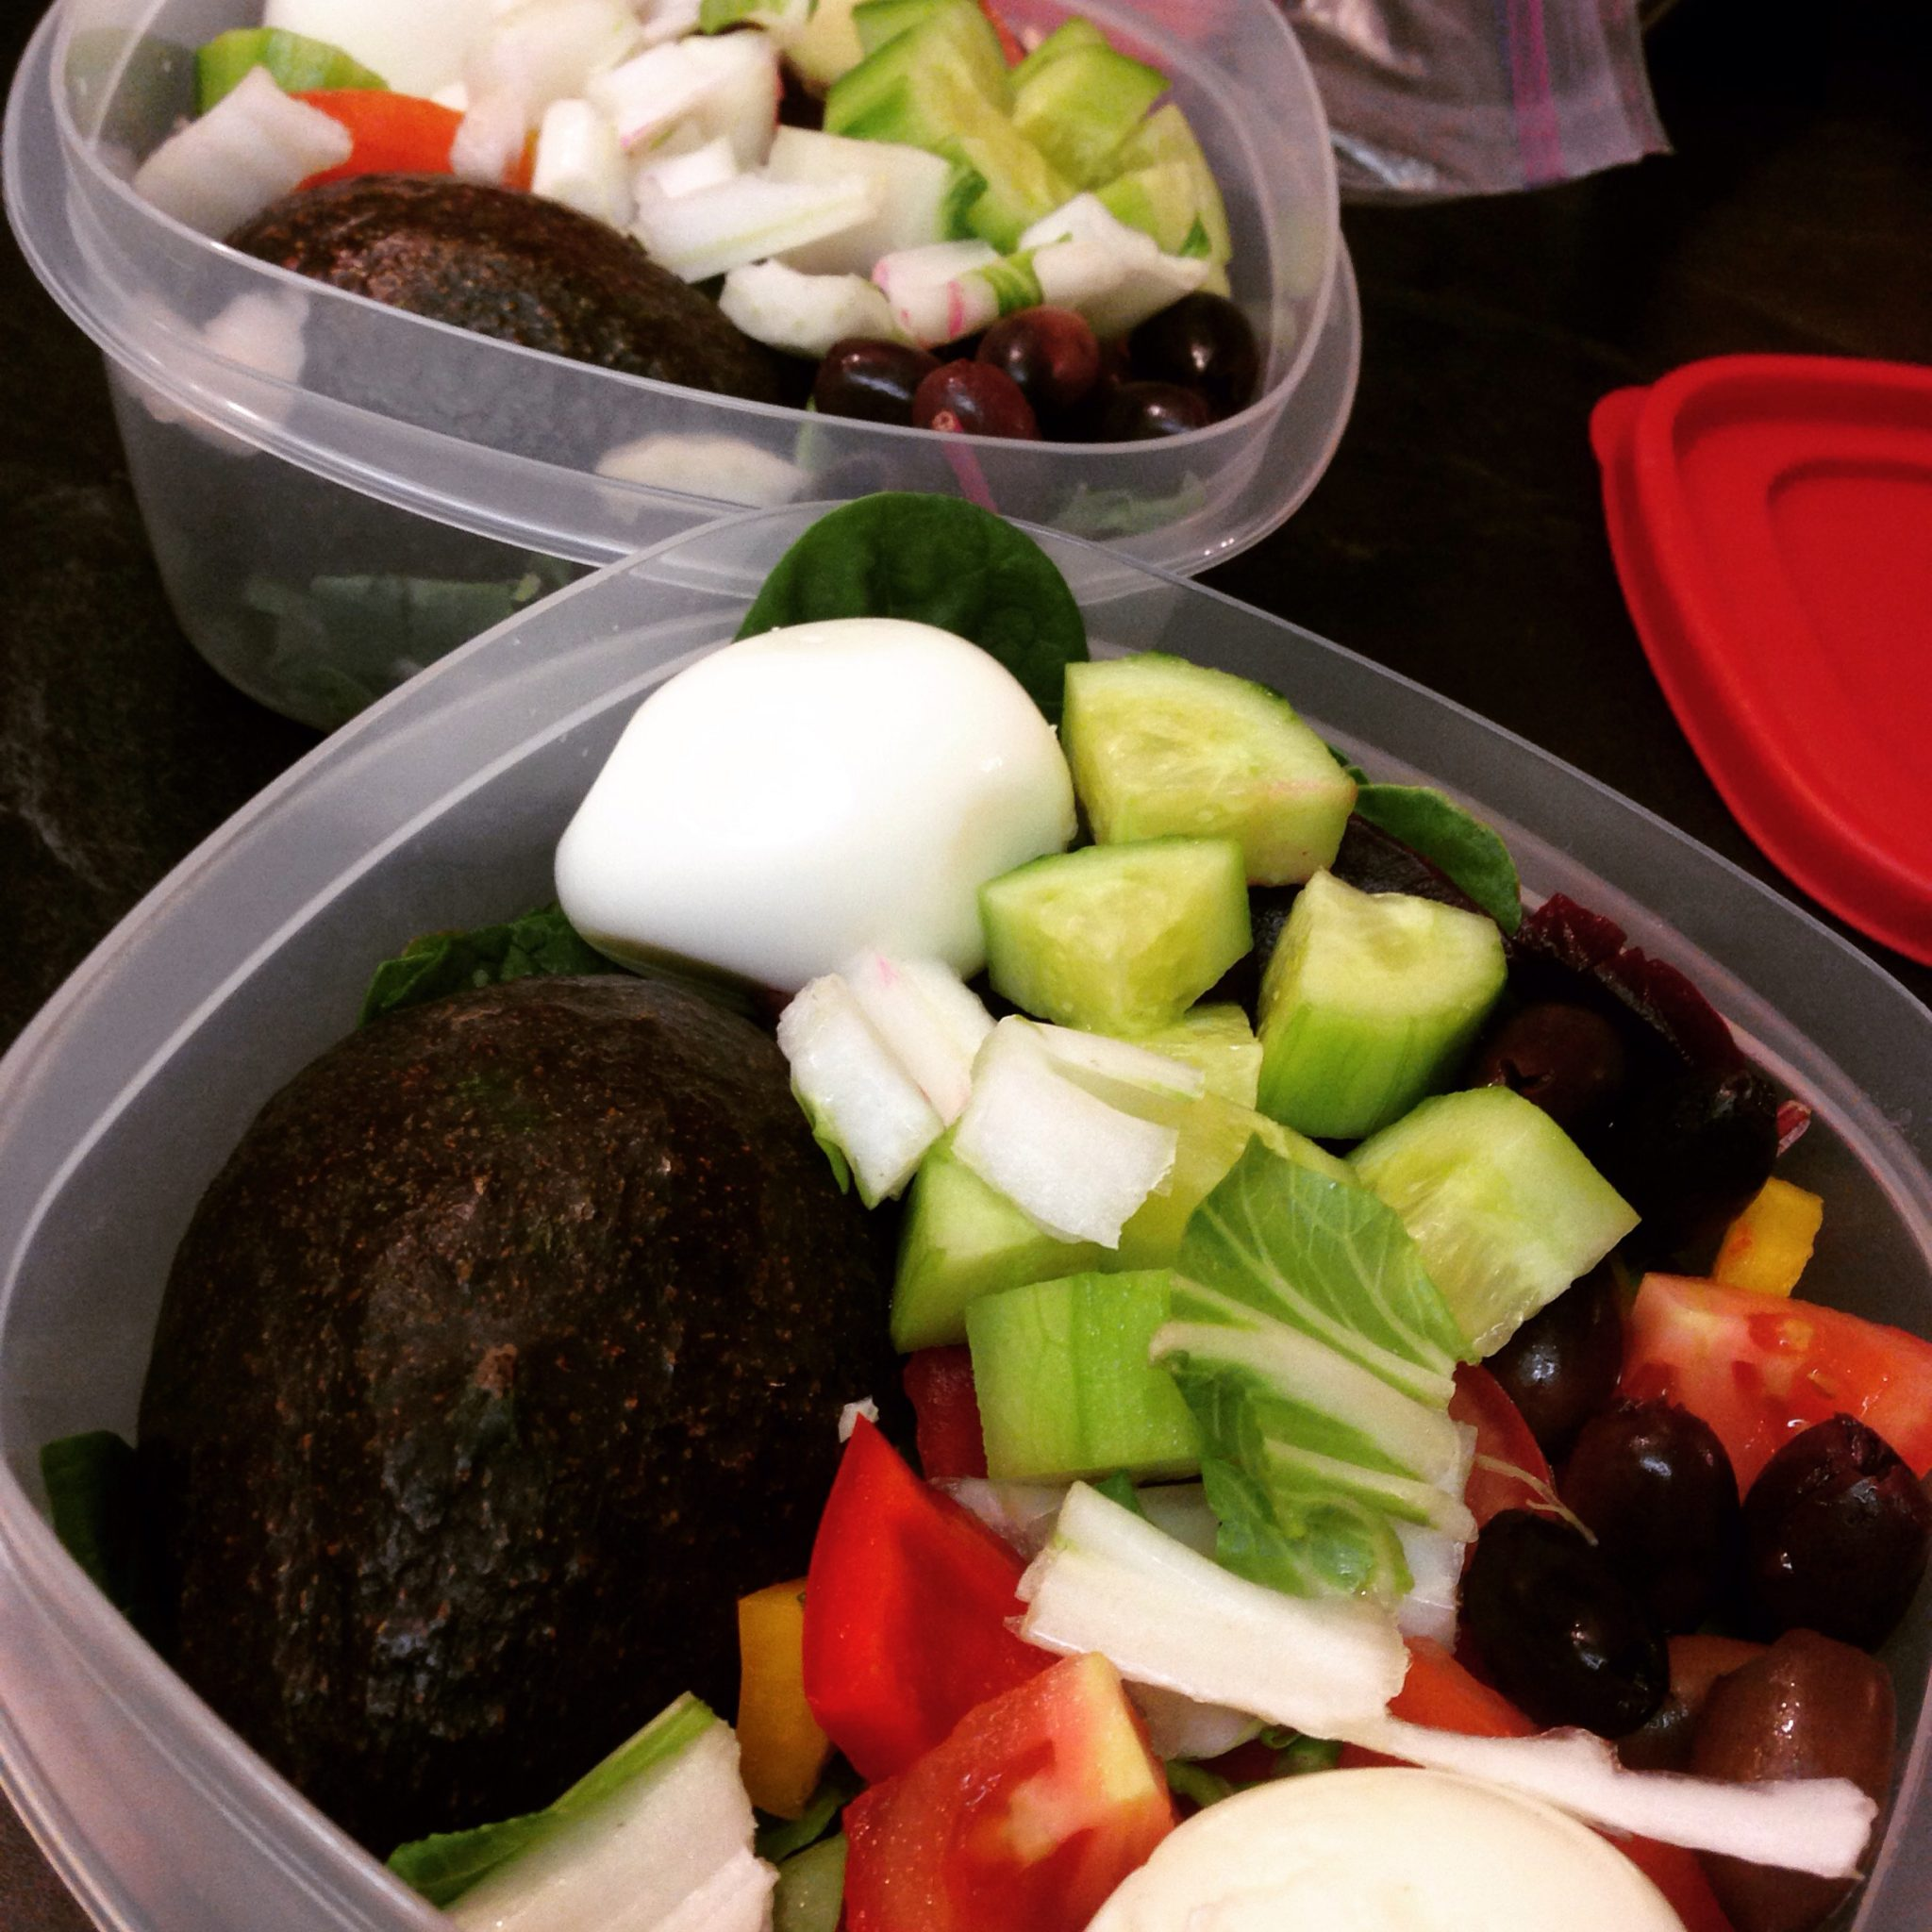 pre-packed salads with protein, fat, and carbs